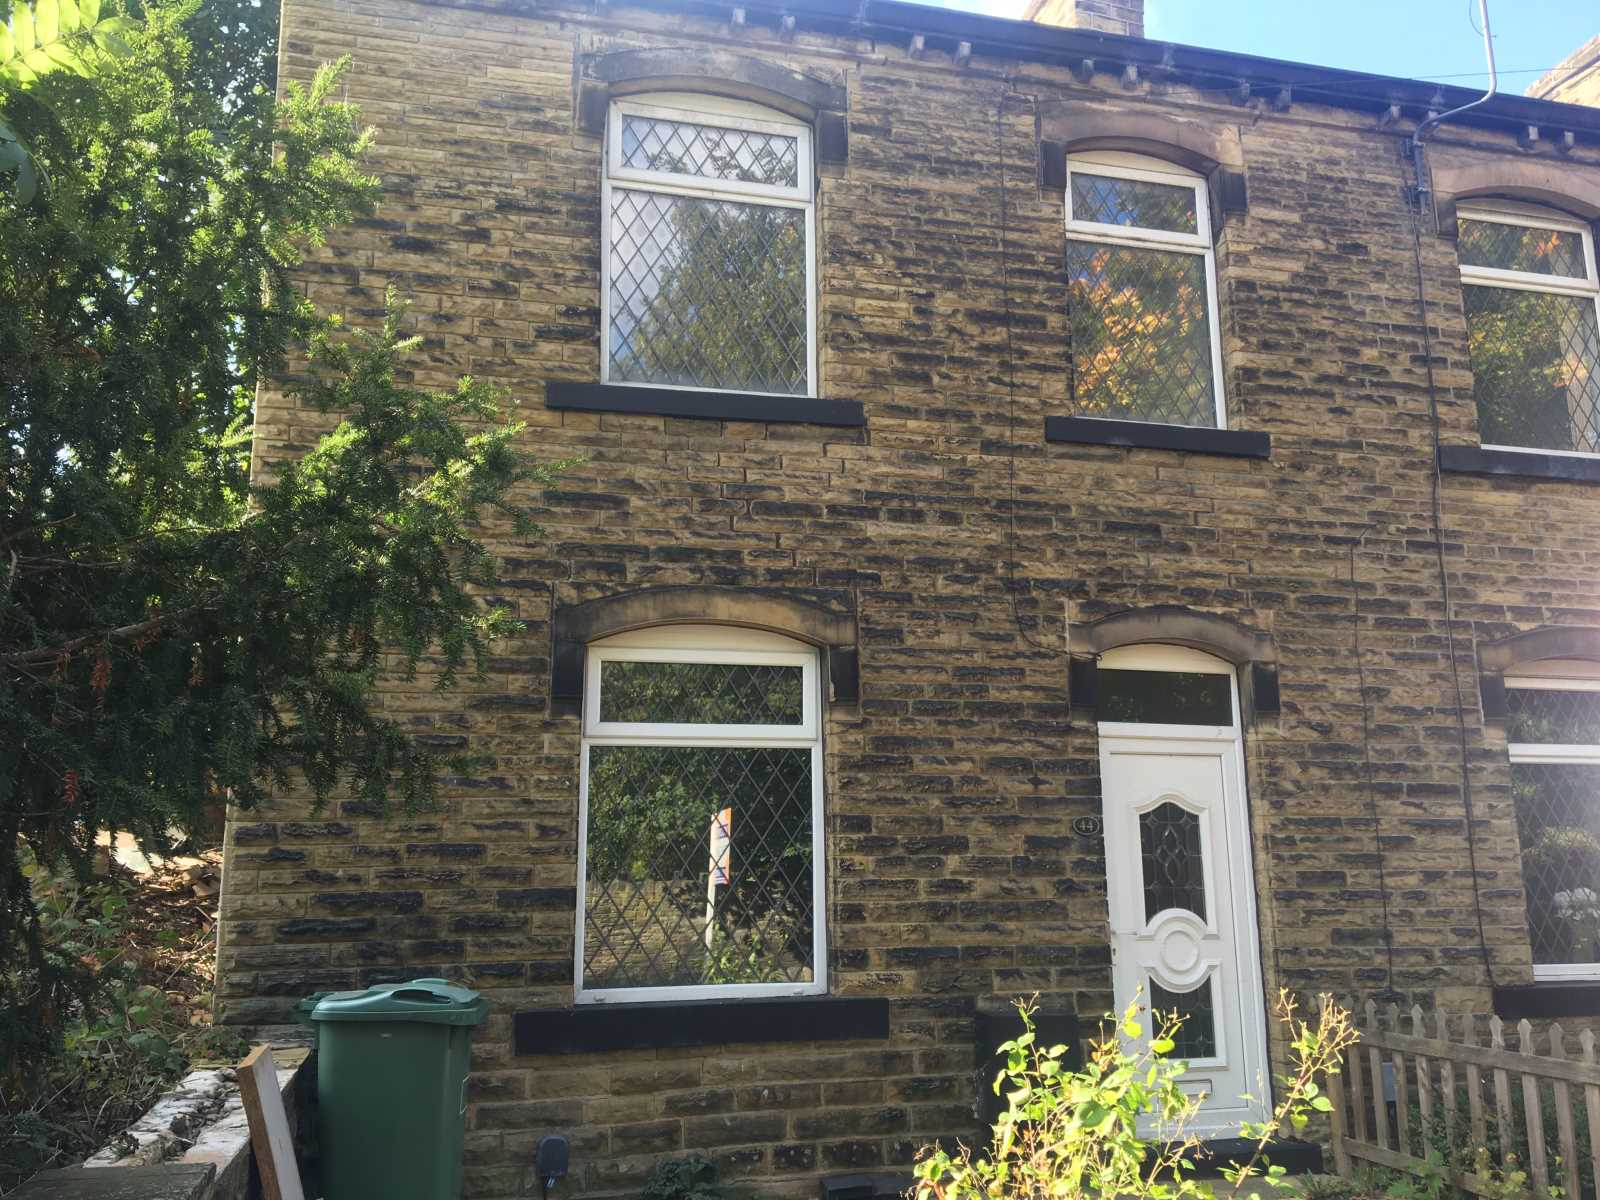 44 Wood Lane, Newsome, Huddersfield, HD4 6PU